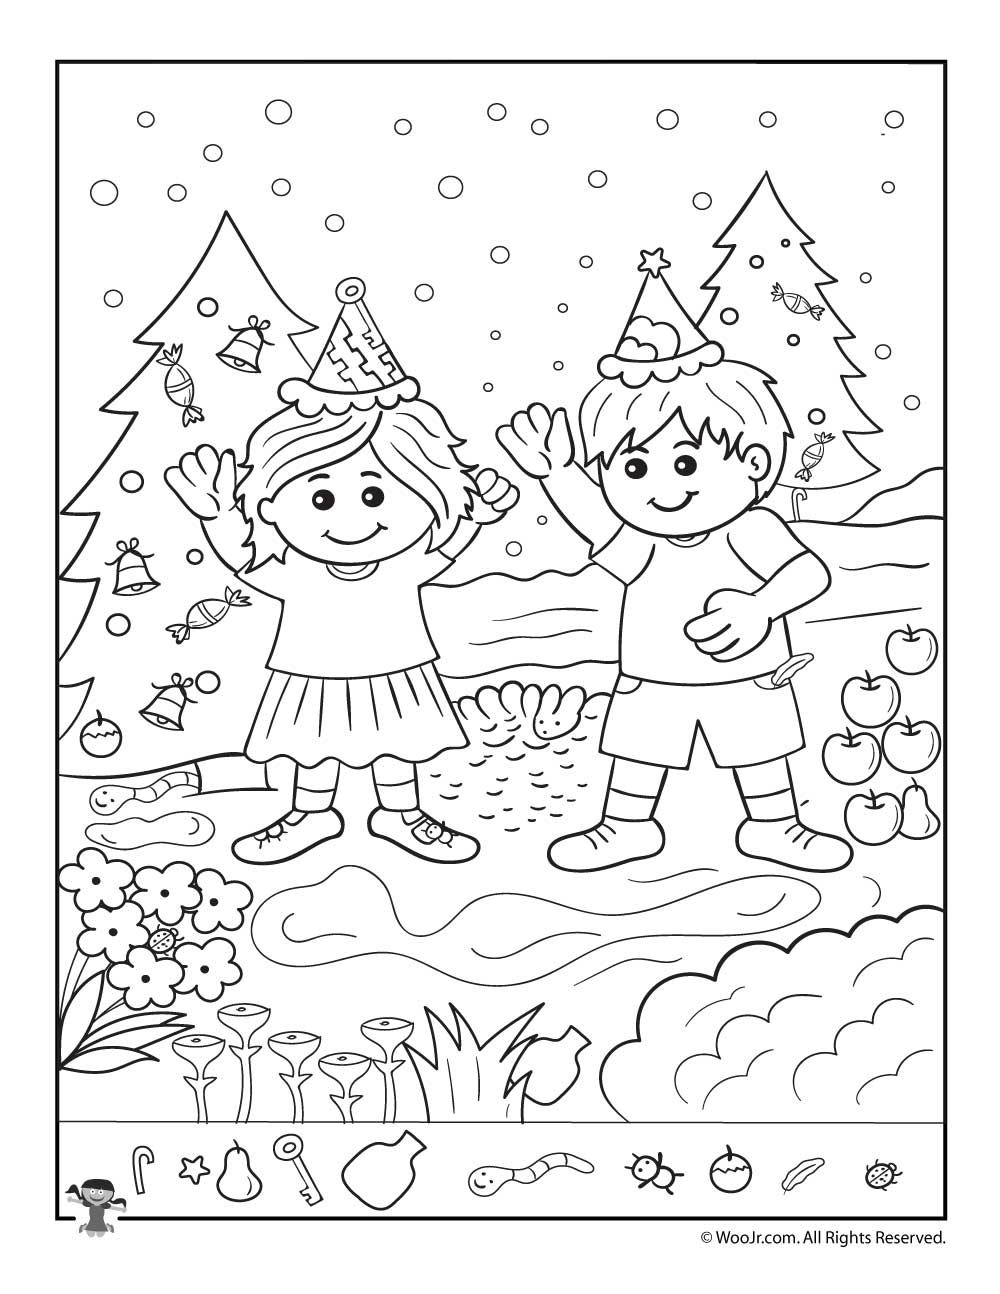 the kids at christmas hidden picture page woo jr kids activities